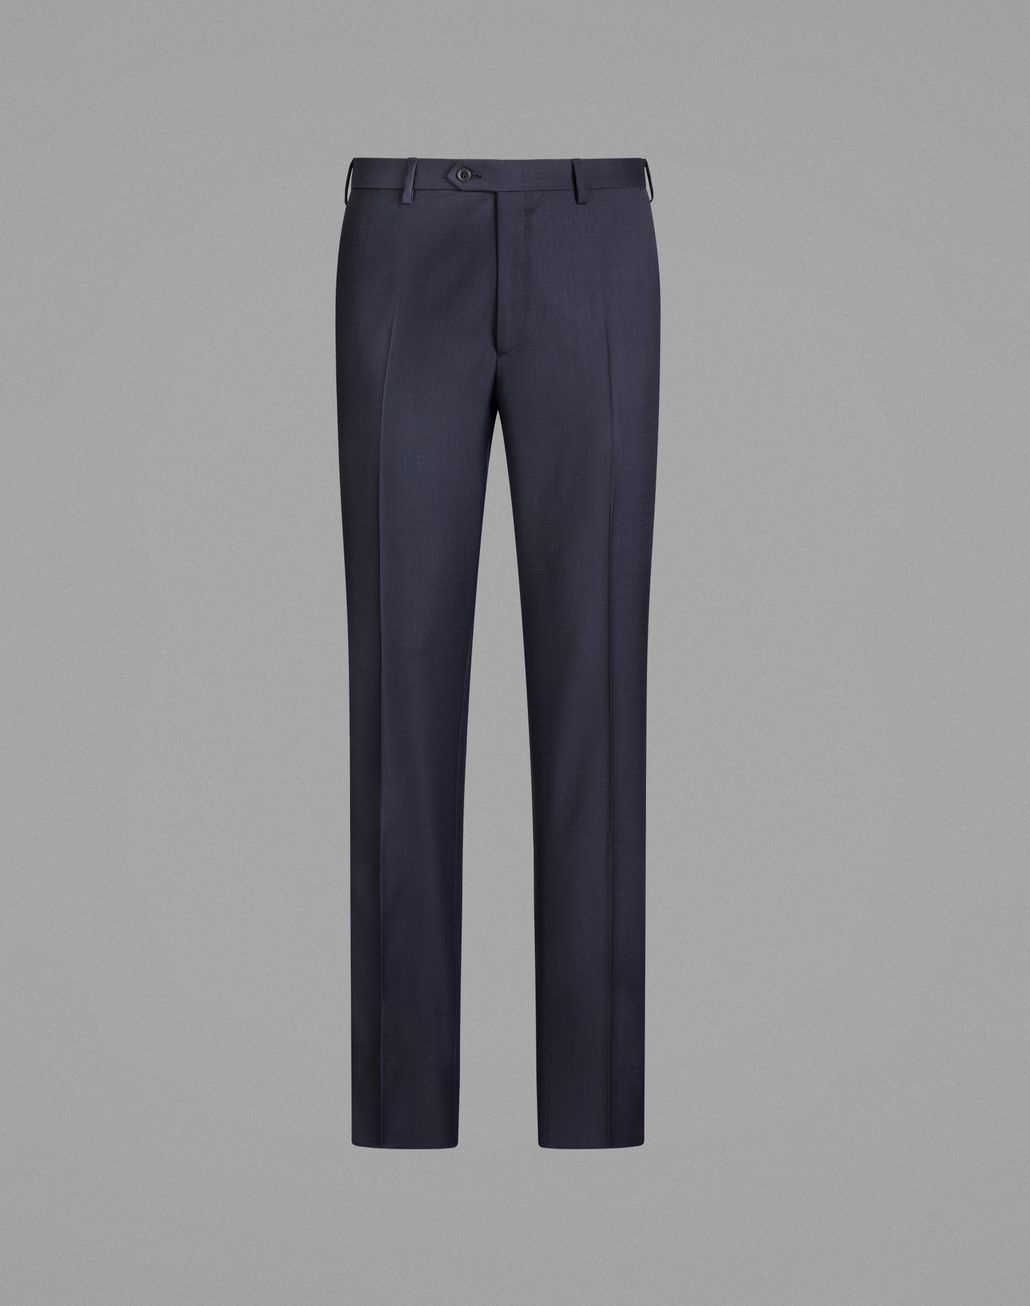 BRIONI 'Essential' Navy Blue Tigullio Trousers Trousers [*** pickupInStoreShippingNotGuaranteed_info ***] f